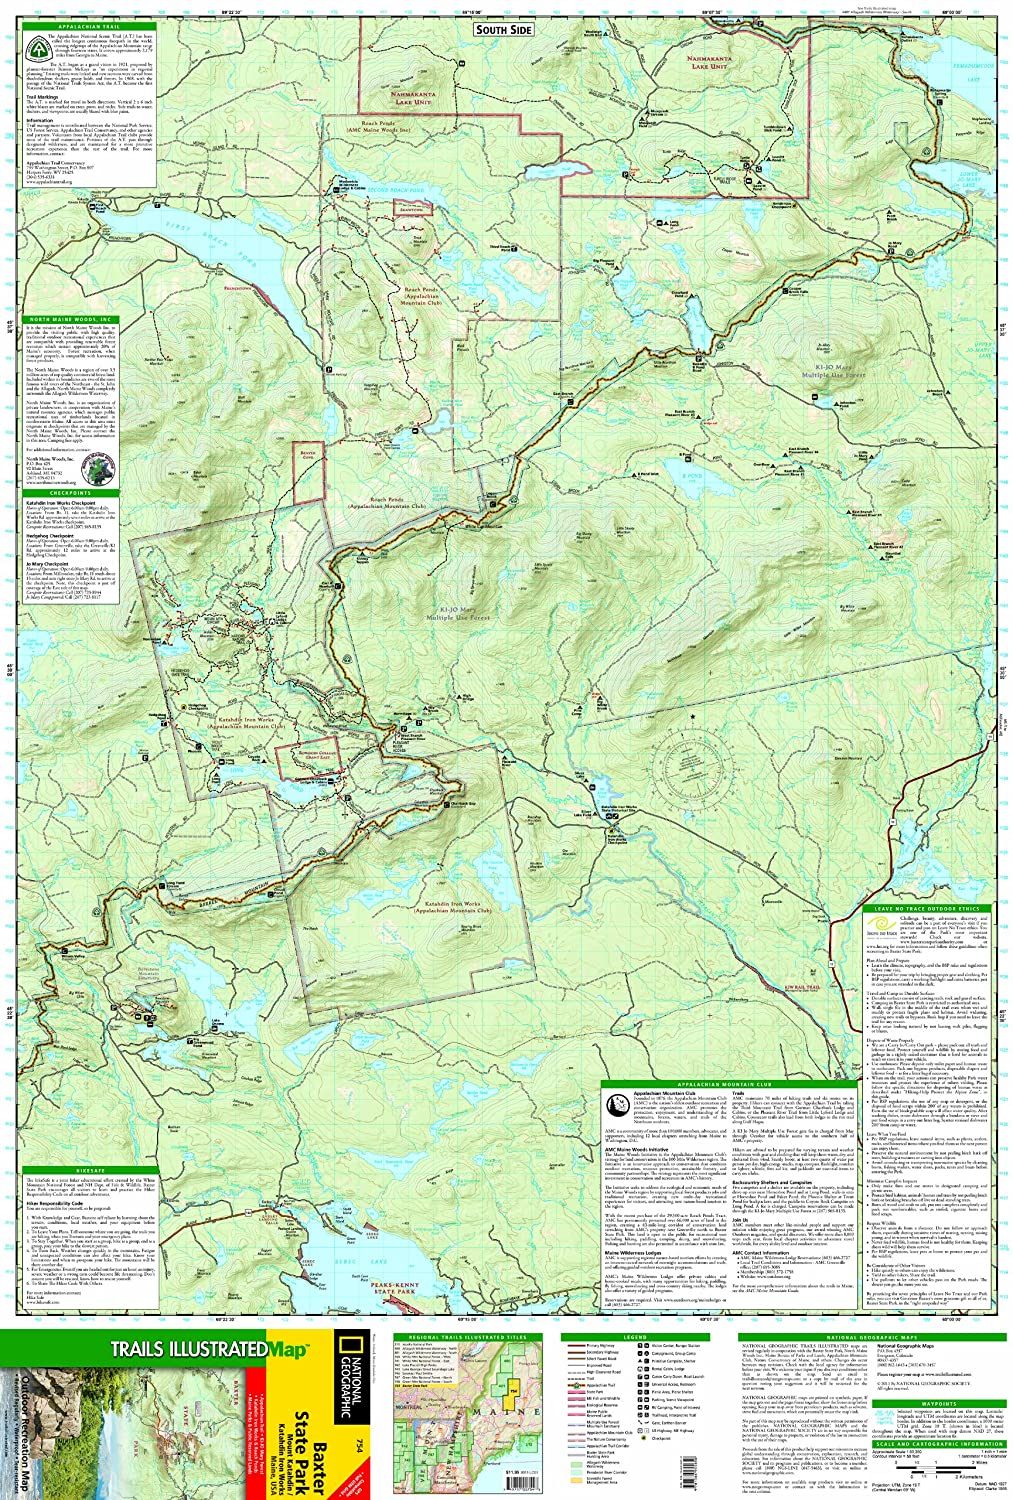 Amazon.com: Baxter State Park [Mount Katahdin, Katahdin Iron Works ...